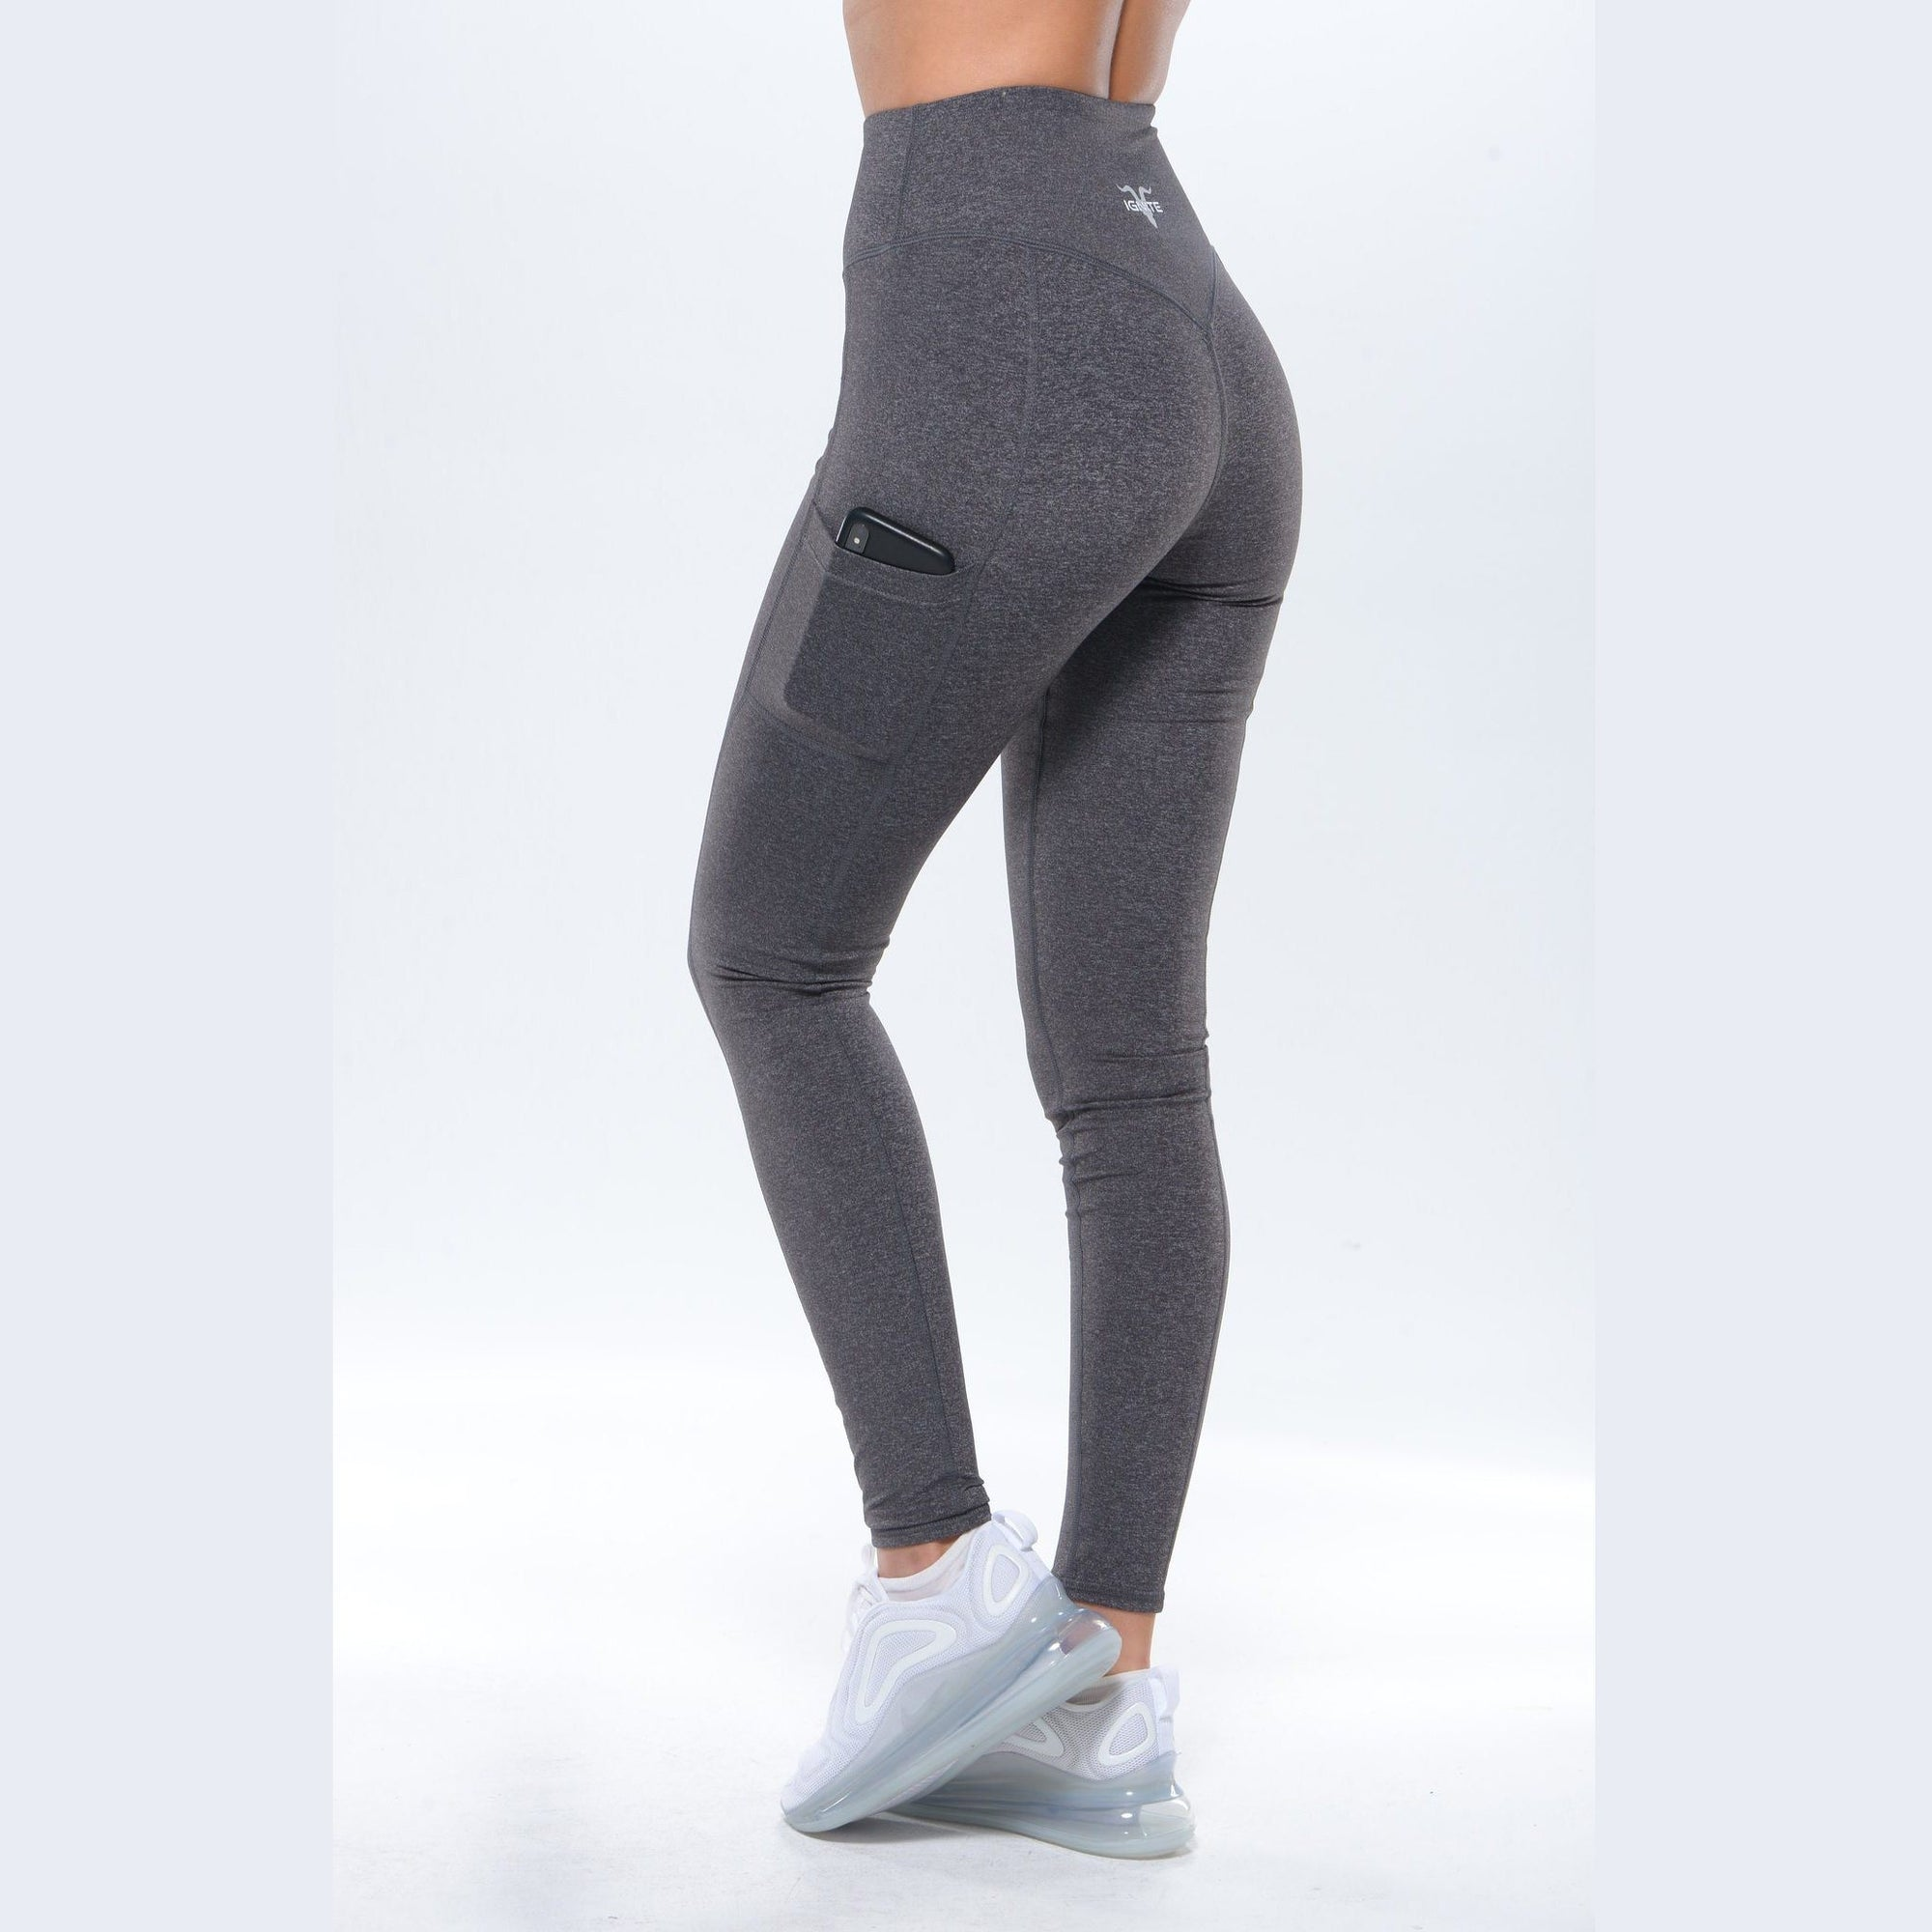 High-Waisted Pocket Leggings - Charcoal